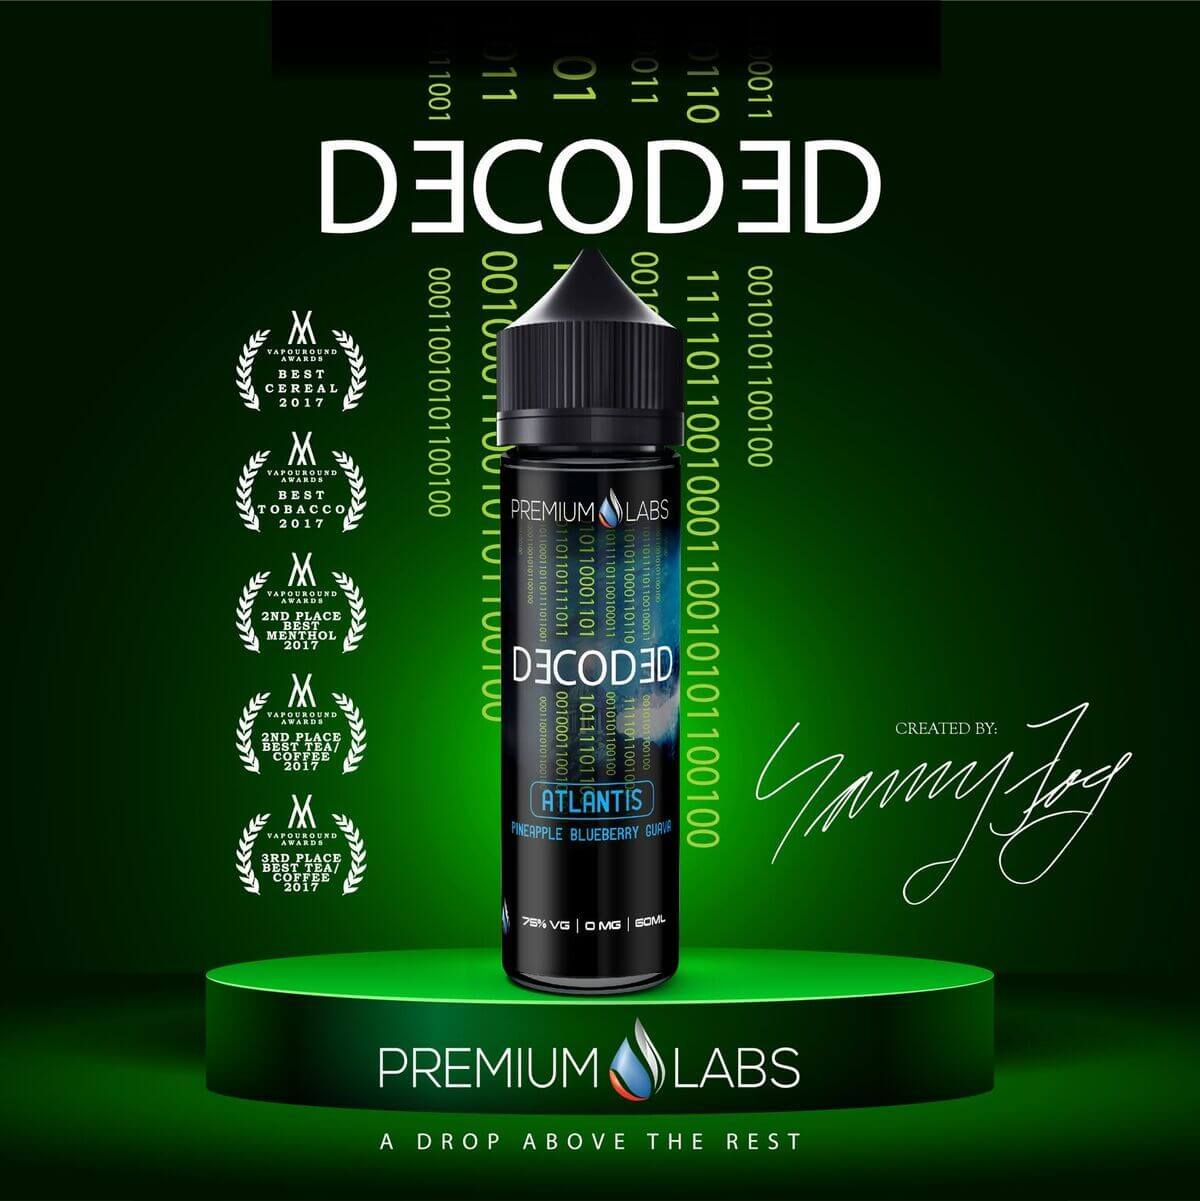 Atlantis - Decoded E Liquid